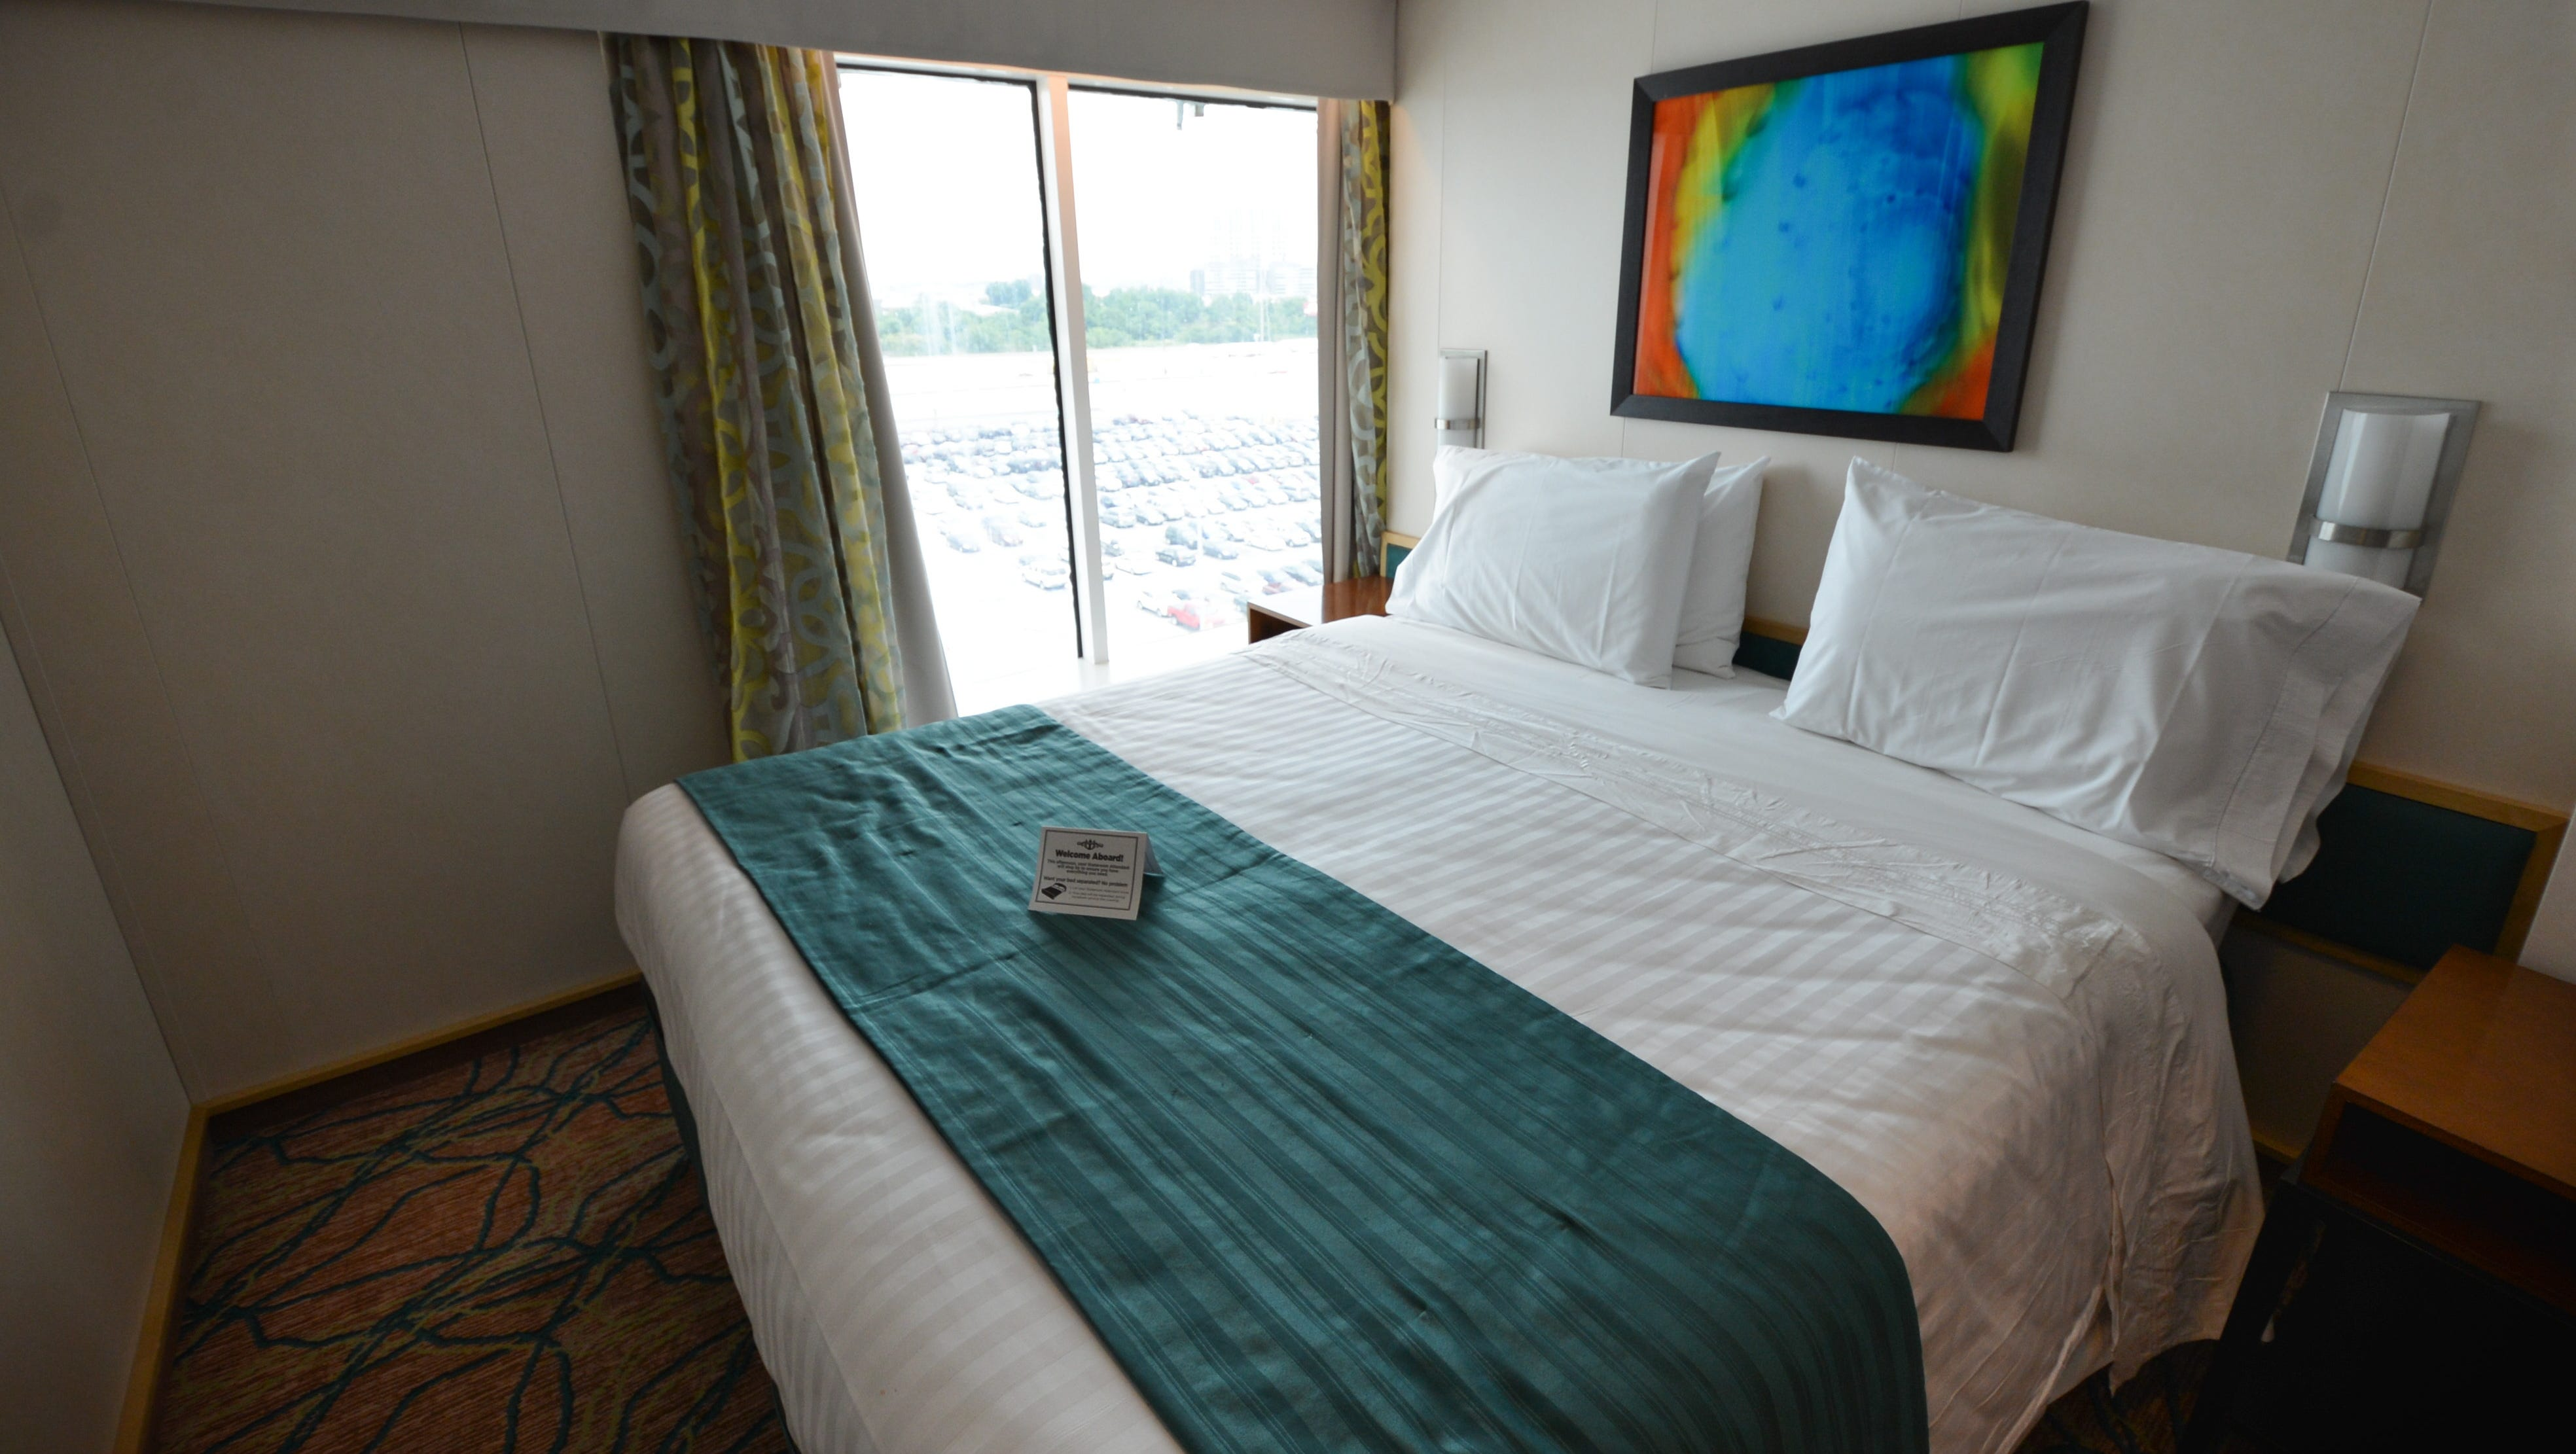 The makeover of the Grandeur of the Seas brought 16 new Panoramic Ocean View cabins that feature floor-to-ceiling windows.